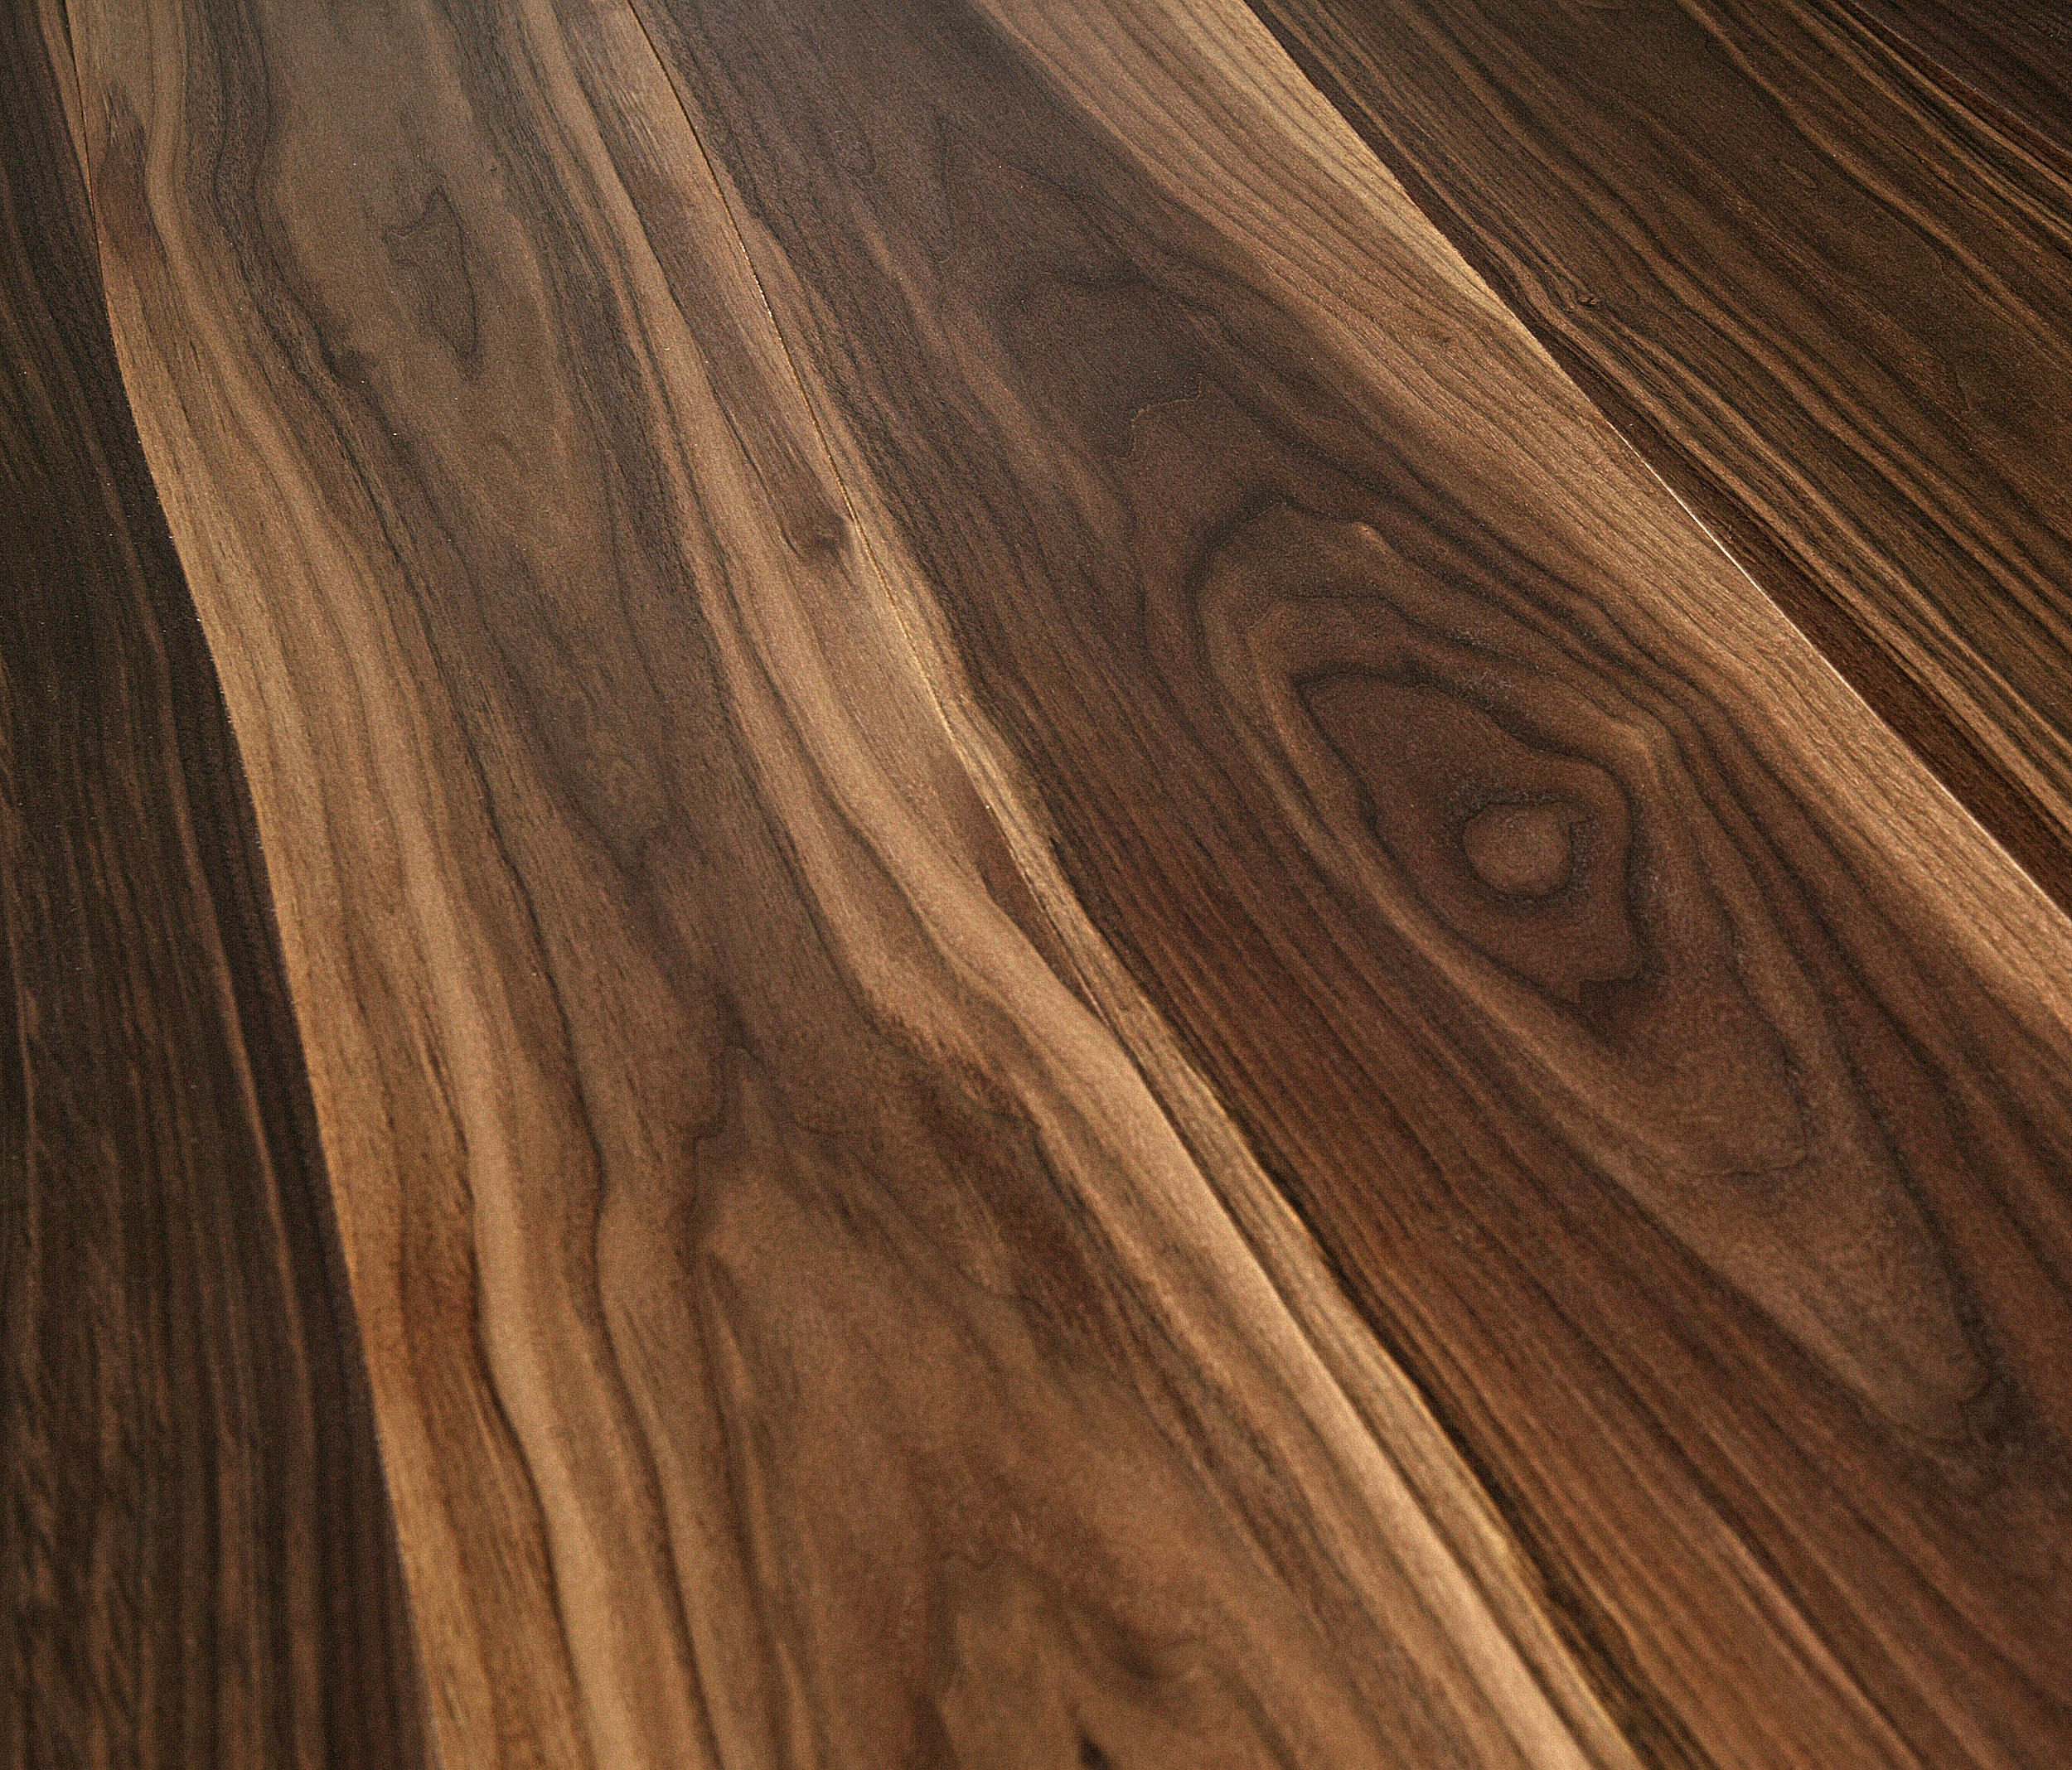 Emejing unfinished walnut wood ideas Unfinished hardwood floors